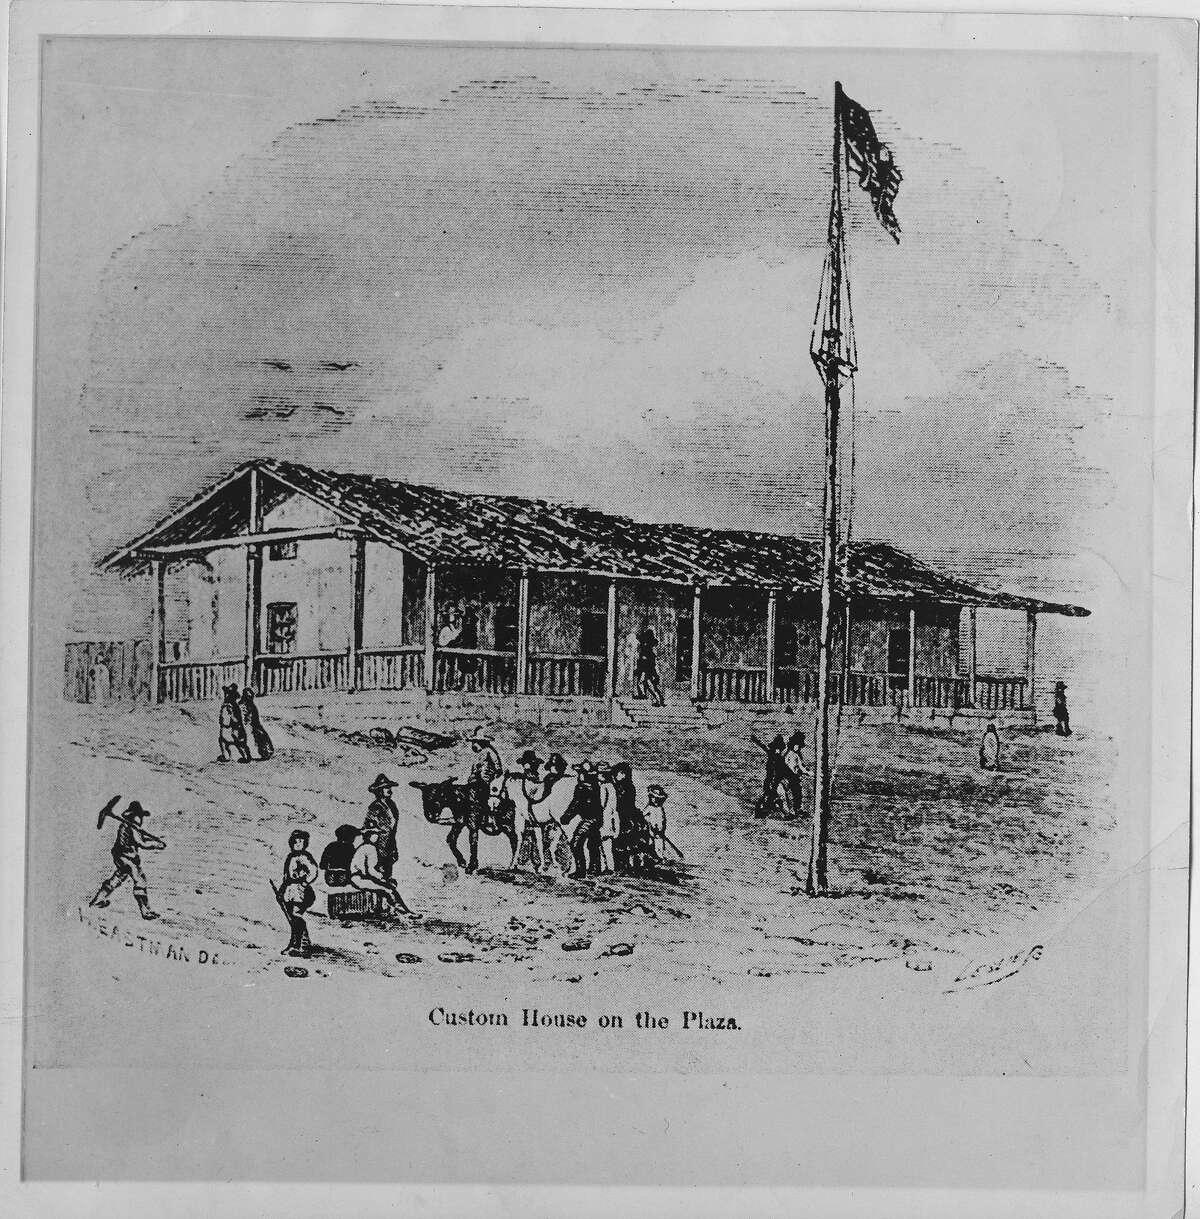 """A print of the Mexican Custom House in the Plaza of the port of Yerba Buena, later referred to as the """"Old Adobe."""" (also spelled Customhouse.) The Plaza was later named Portsmouth Square, named after the sloop USS Portsmouth that was used when the Americans claimed Alta California for the United States on July 9, 1846. The American flag was run up on the flag pole in front of the Customs House and the building was taken over. Yerba Buena was renamed San Francisco on January 30, 1847."""